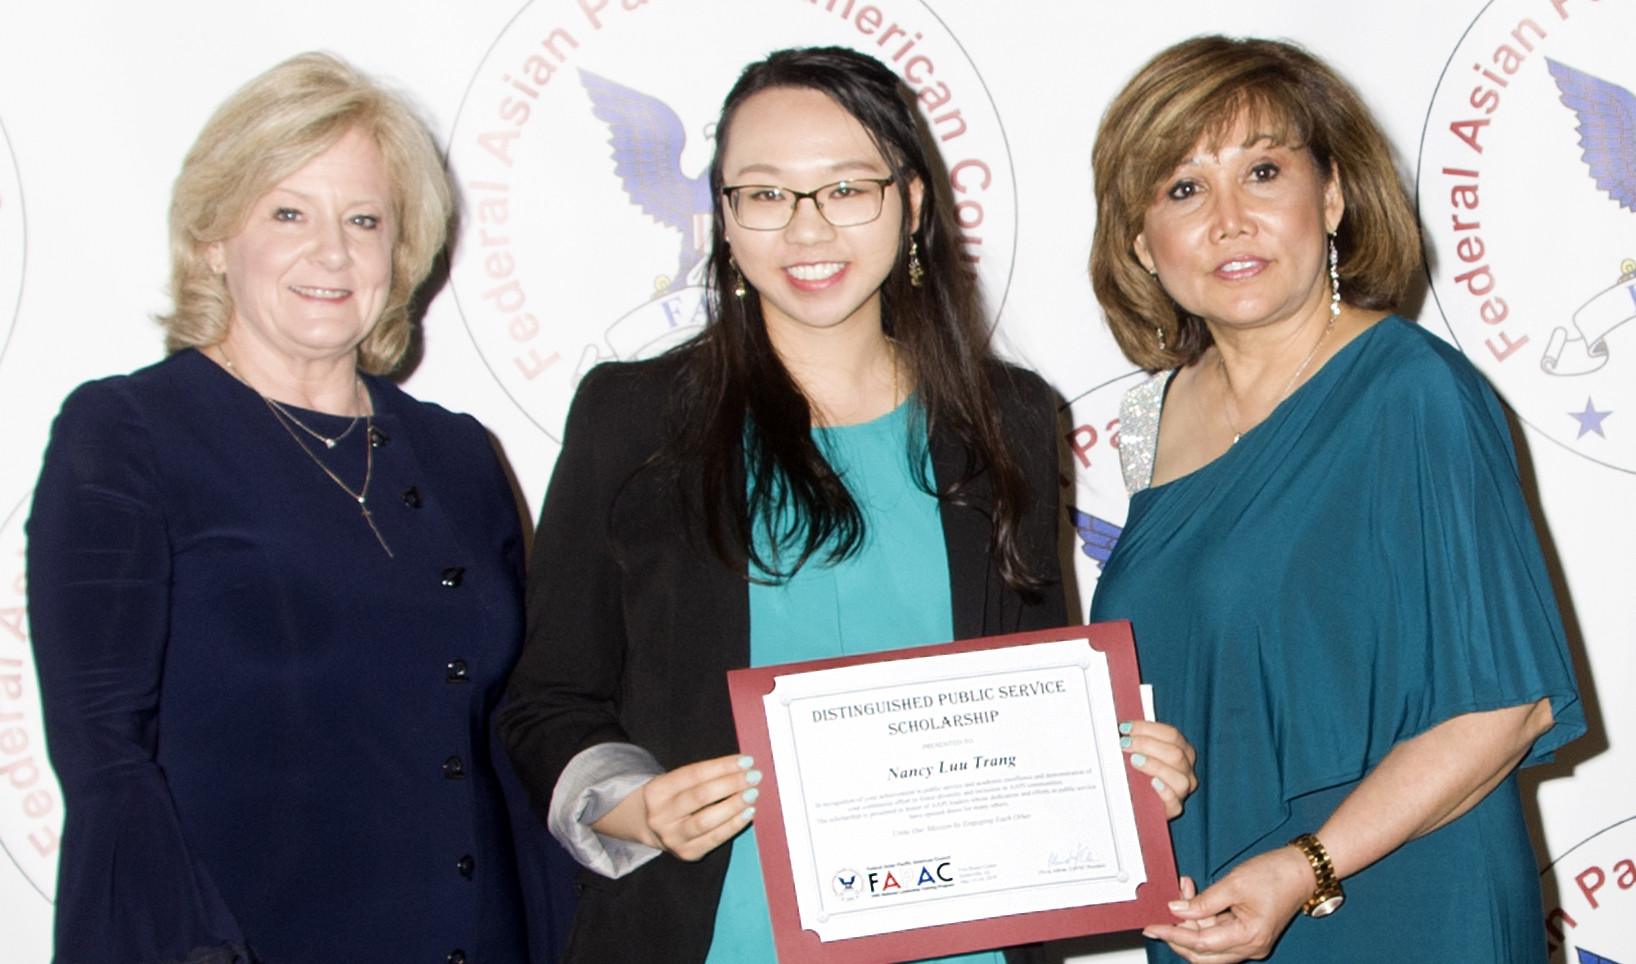 Nancy Trang (Center) with Marshall Space Flight Center Director Jody Singer (left) and FAPAC President Olivia Adrian (right)